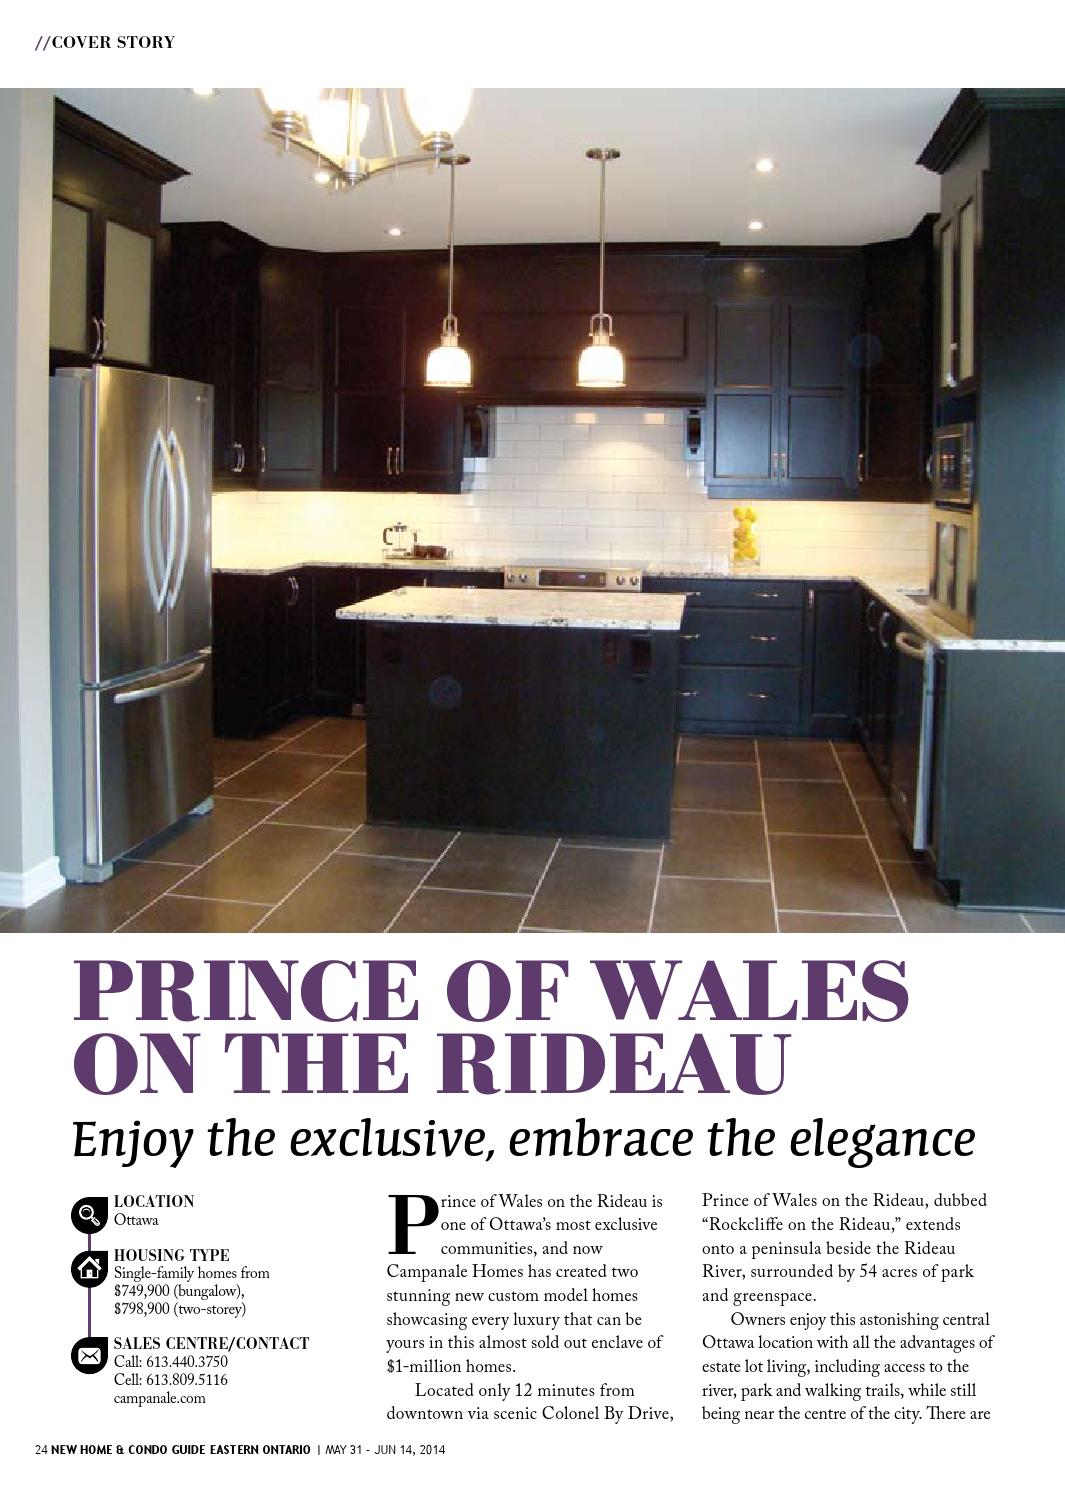 Eastern Ontario New Home & Condo Guide - May 31, 2014 by ...